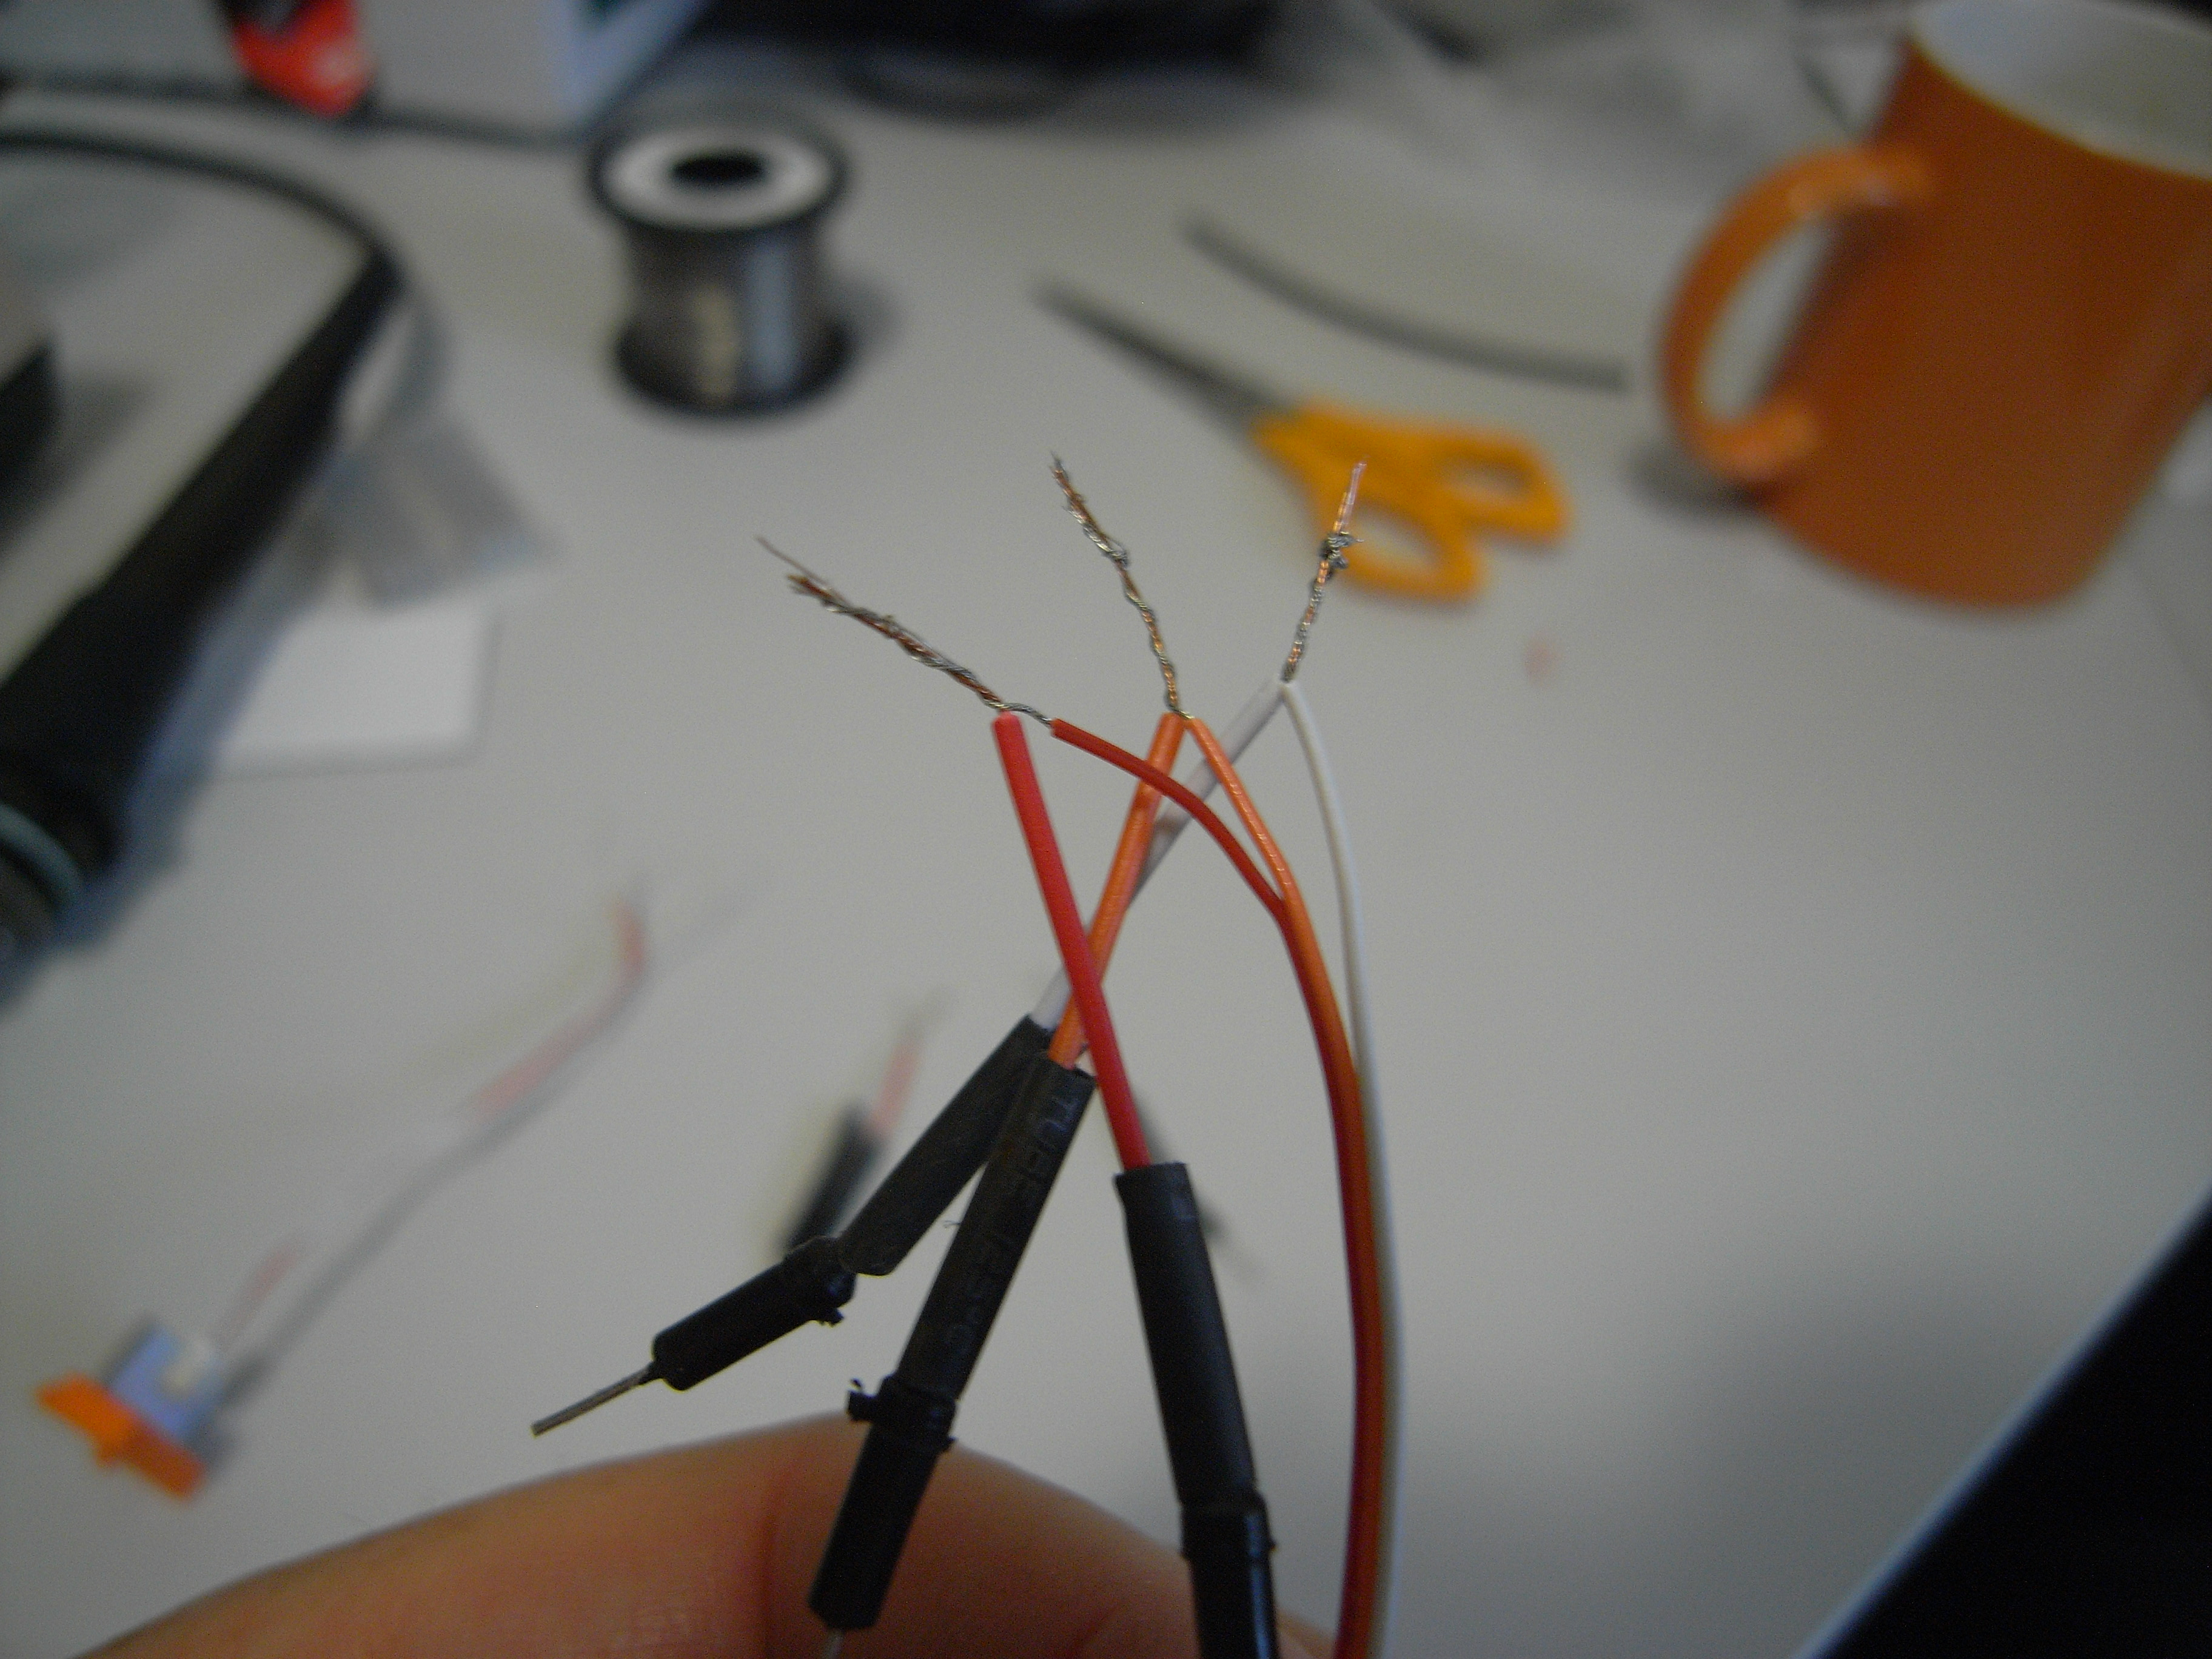 Picture of Add Heat-shrink Sleeve and Twist the Wires Together